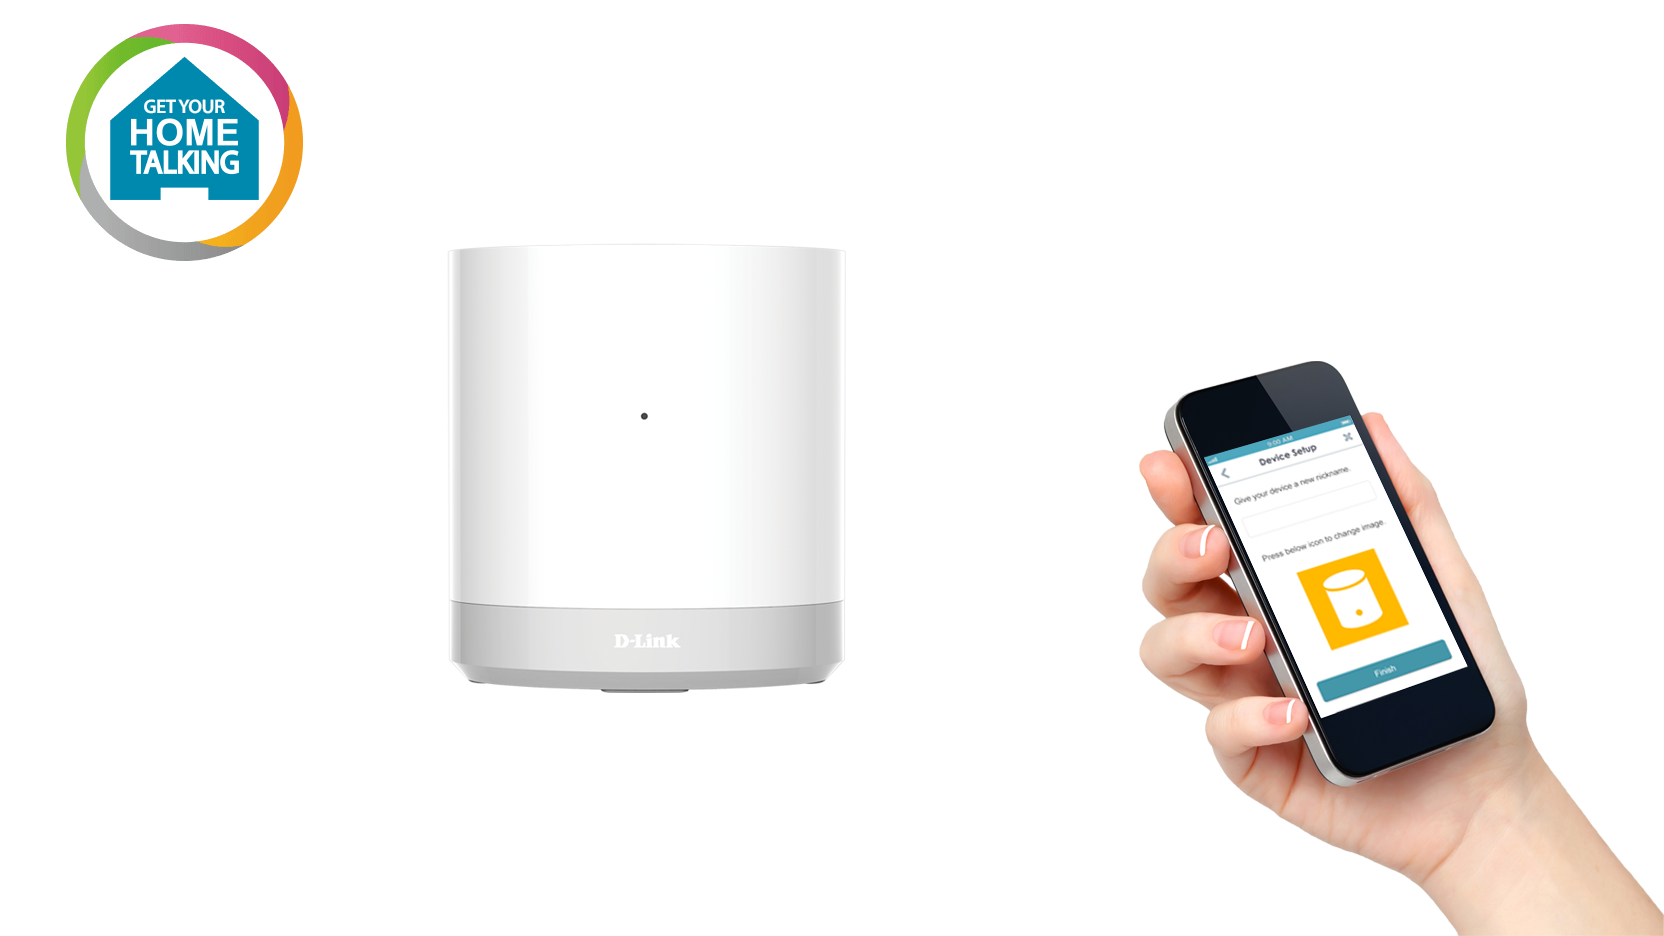 DCH-G020 mydlink Home - Connected Home Hub Front